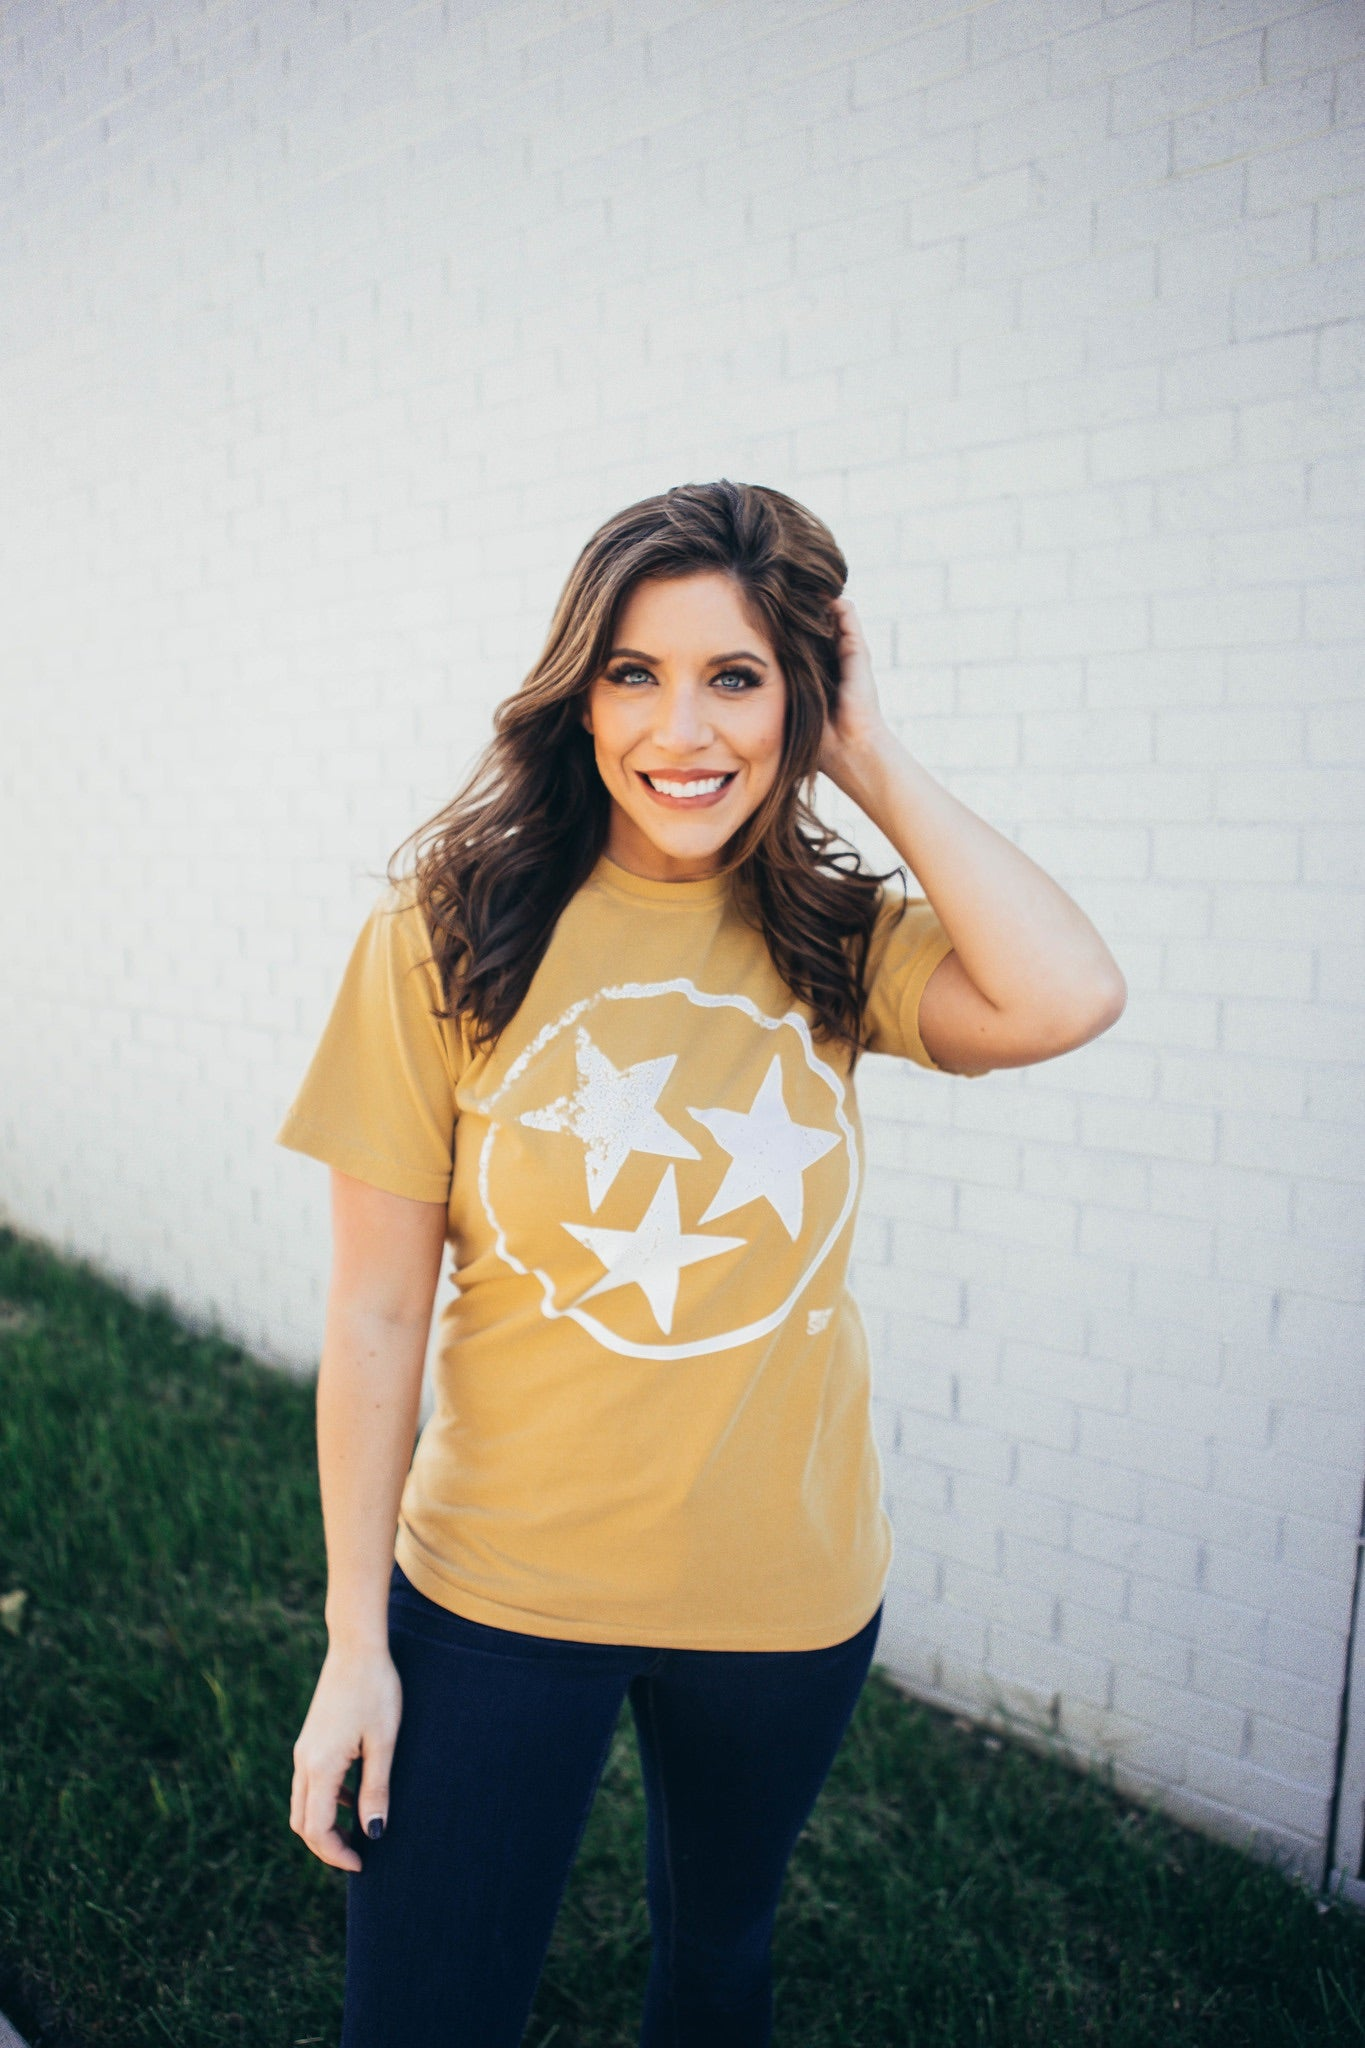 Tristar Short Sleeve Tee in Gold